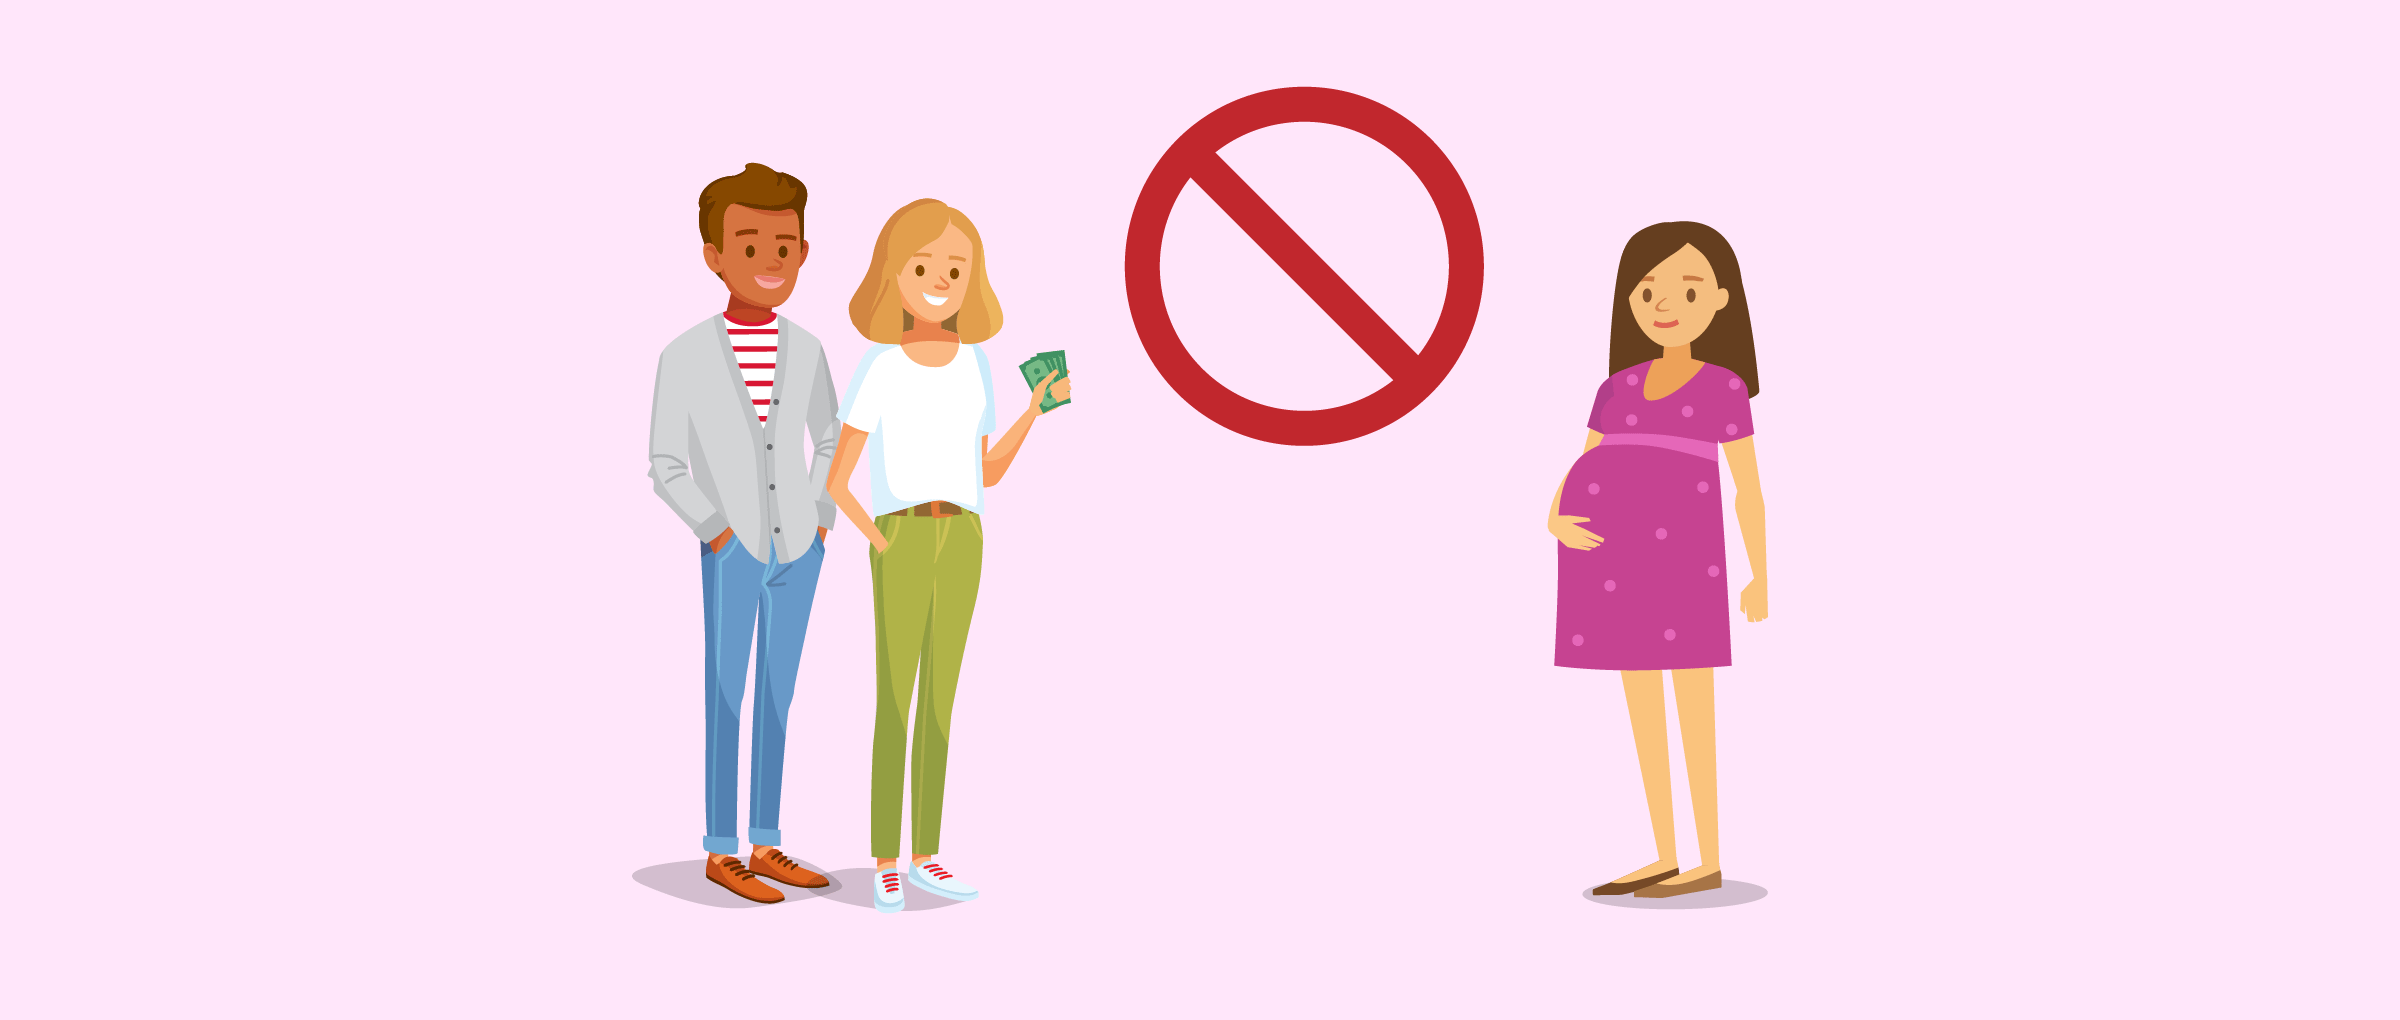 Payment to surrogate forbidden in Portugal